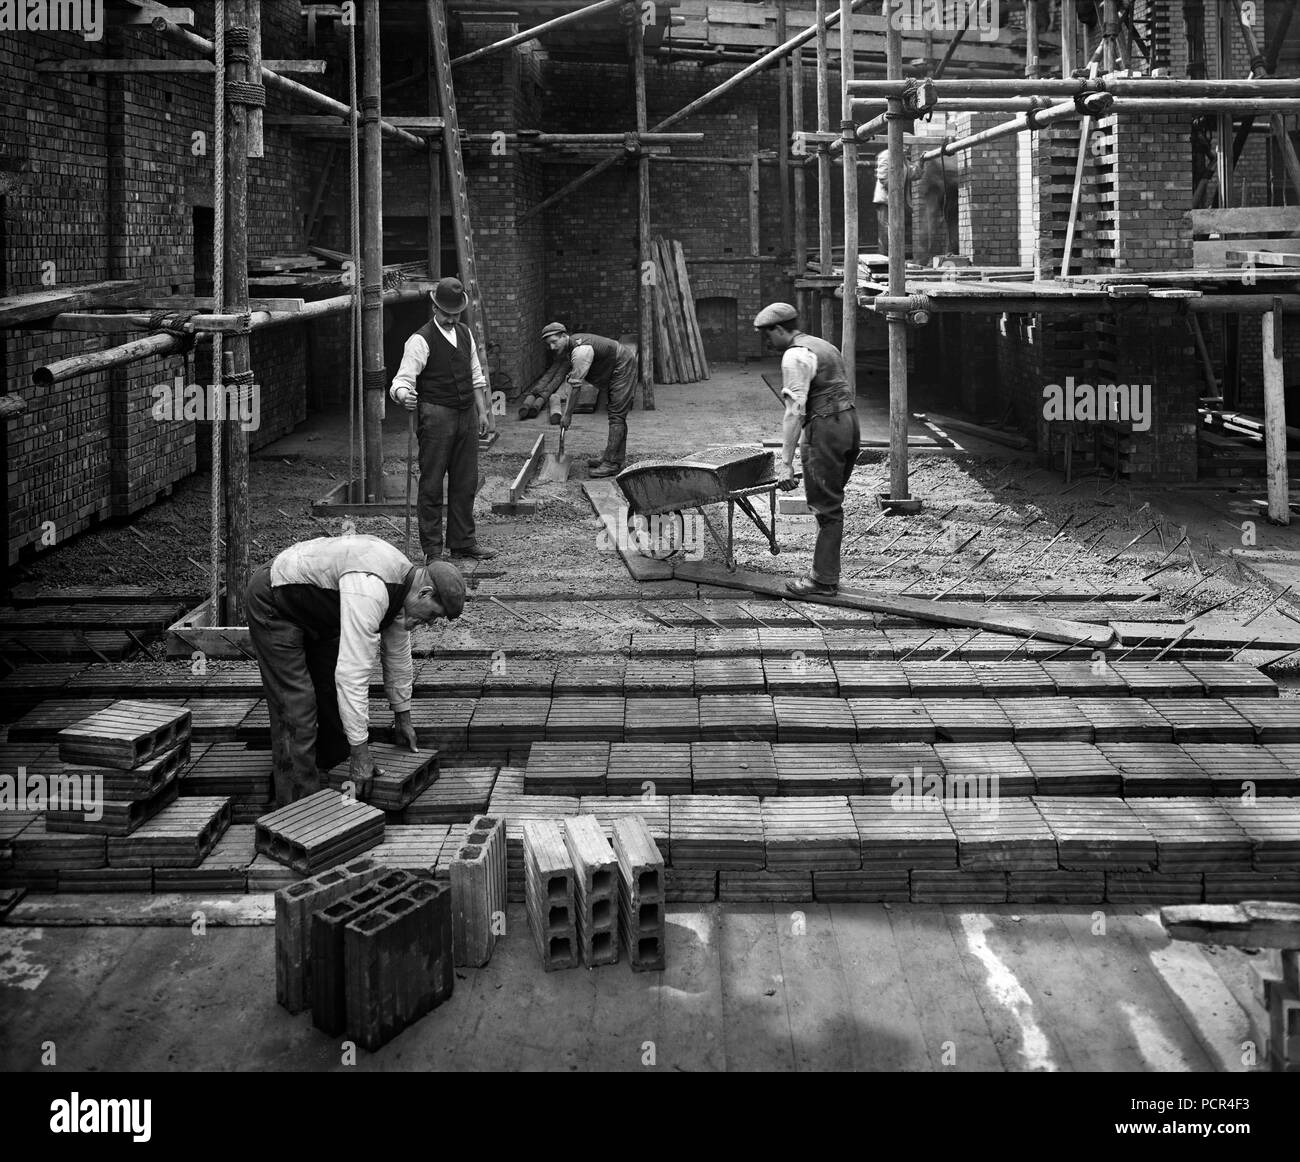 Construction workers laying a hollow pot floor, 8 Lloyds Avenue, City of London, 1907. The 'hollow pot' system, known as the Kahn system, was invented by Julius Kahn in 1903 and was much used for flooring. This building was designed by Richard Norman Shaw for Associated Portland Cement Manufacturers. - Stock Image